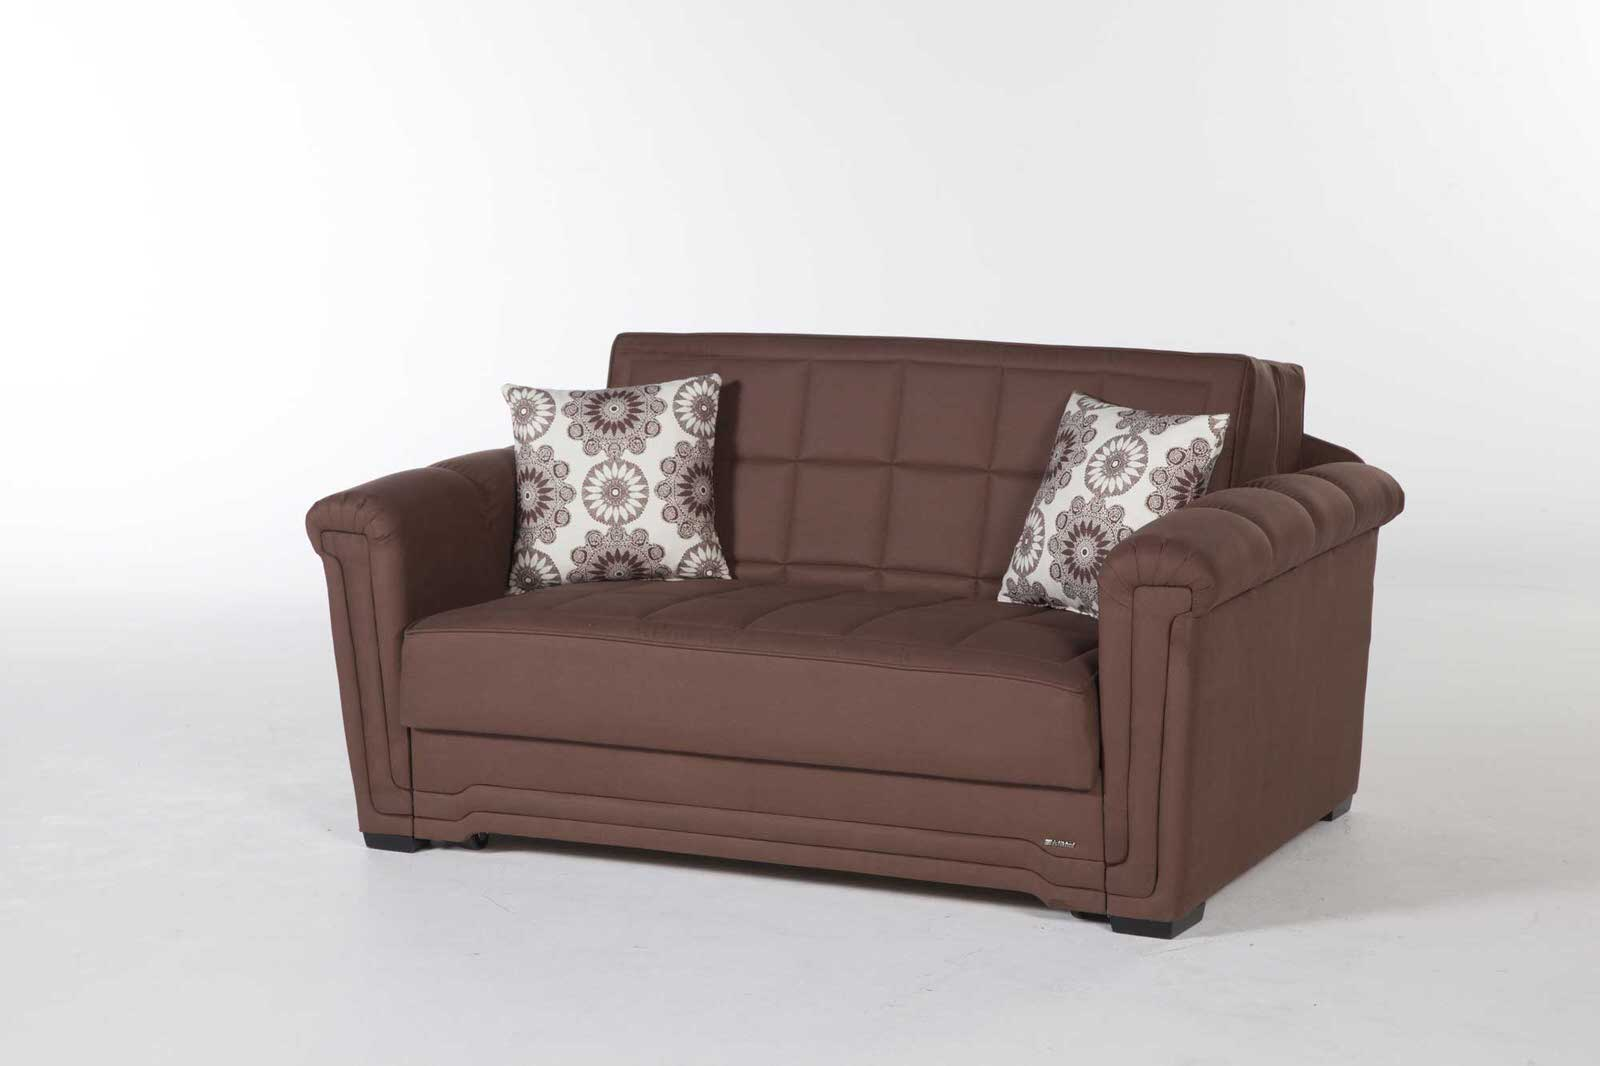 Victoria Obsession Truffle Microfiber Loveseat Sleeper By